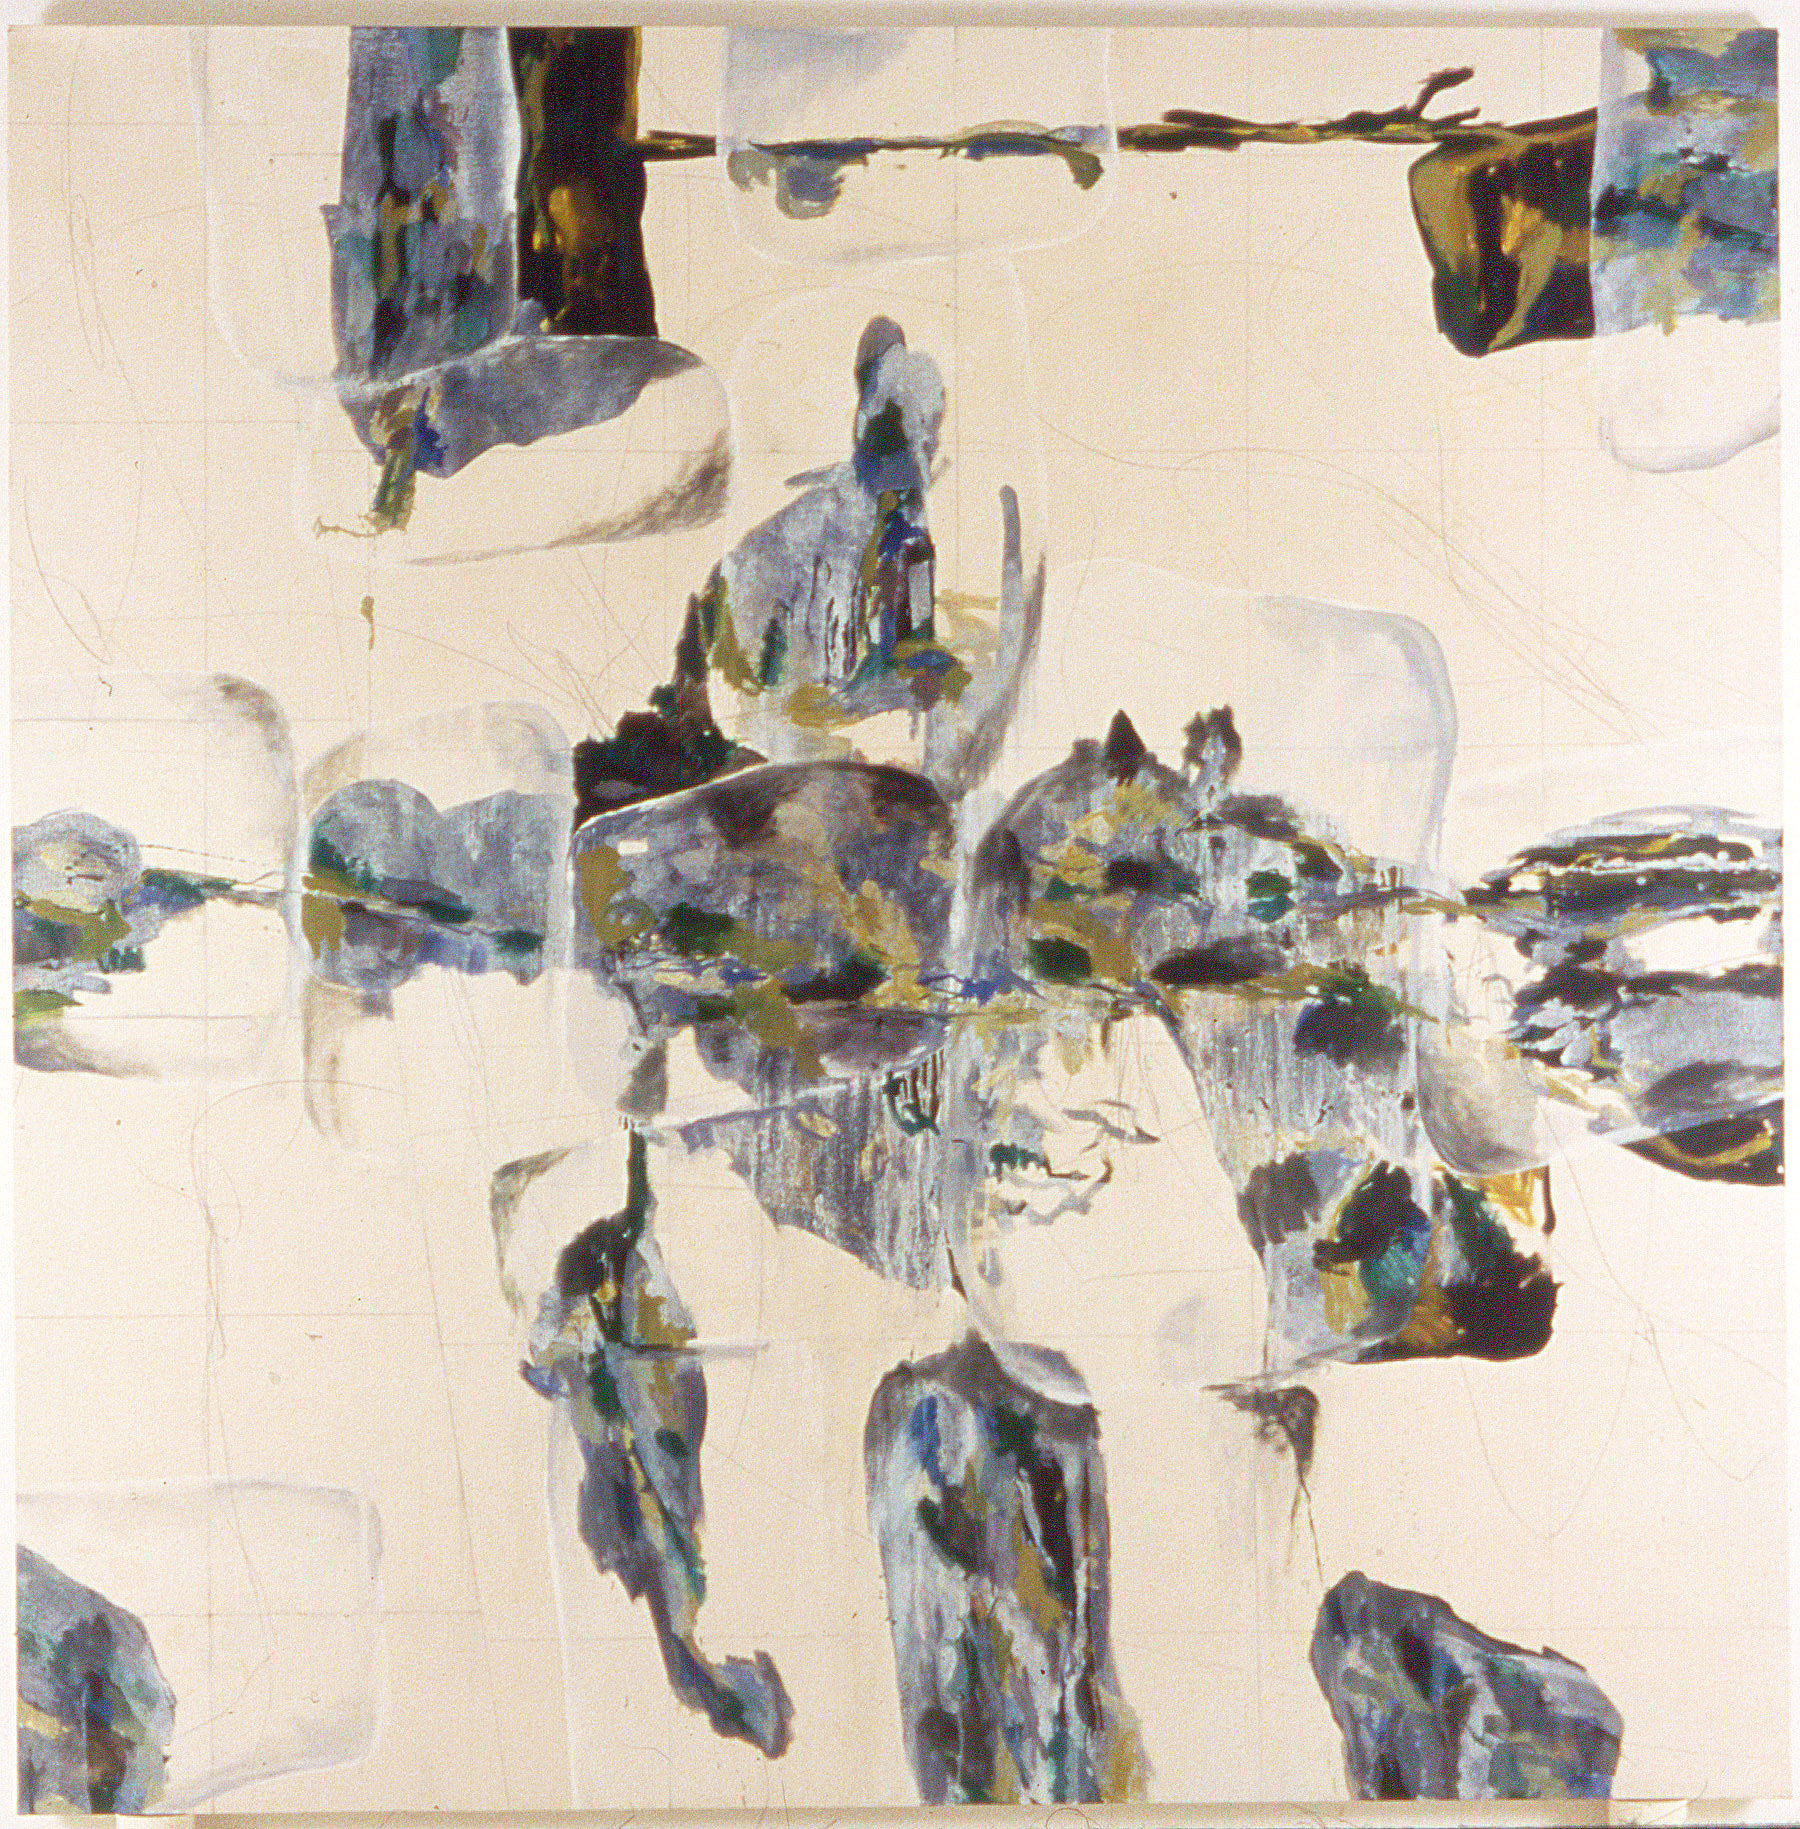 Antigone No. 6 , oil and pencil on canvas, 90 in x 90 in, 1999.